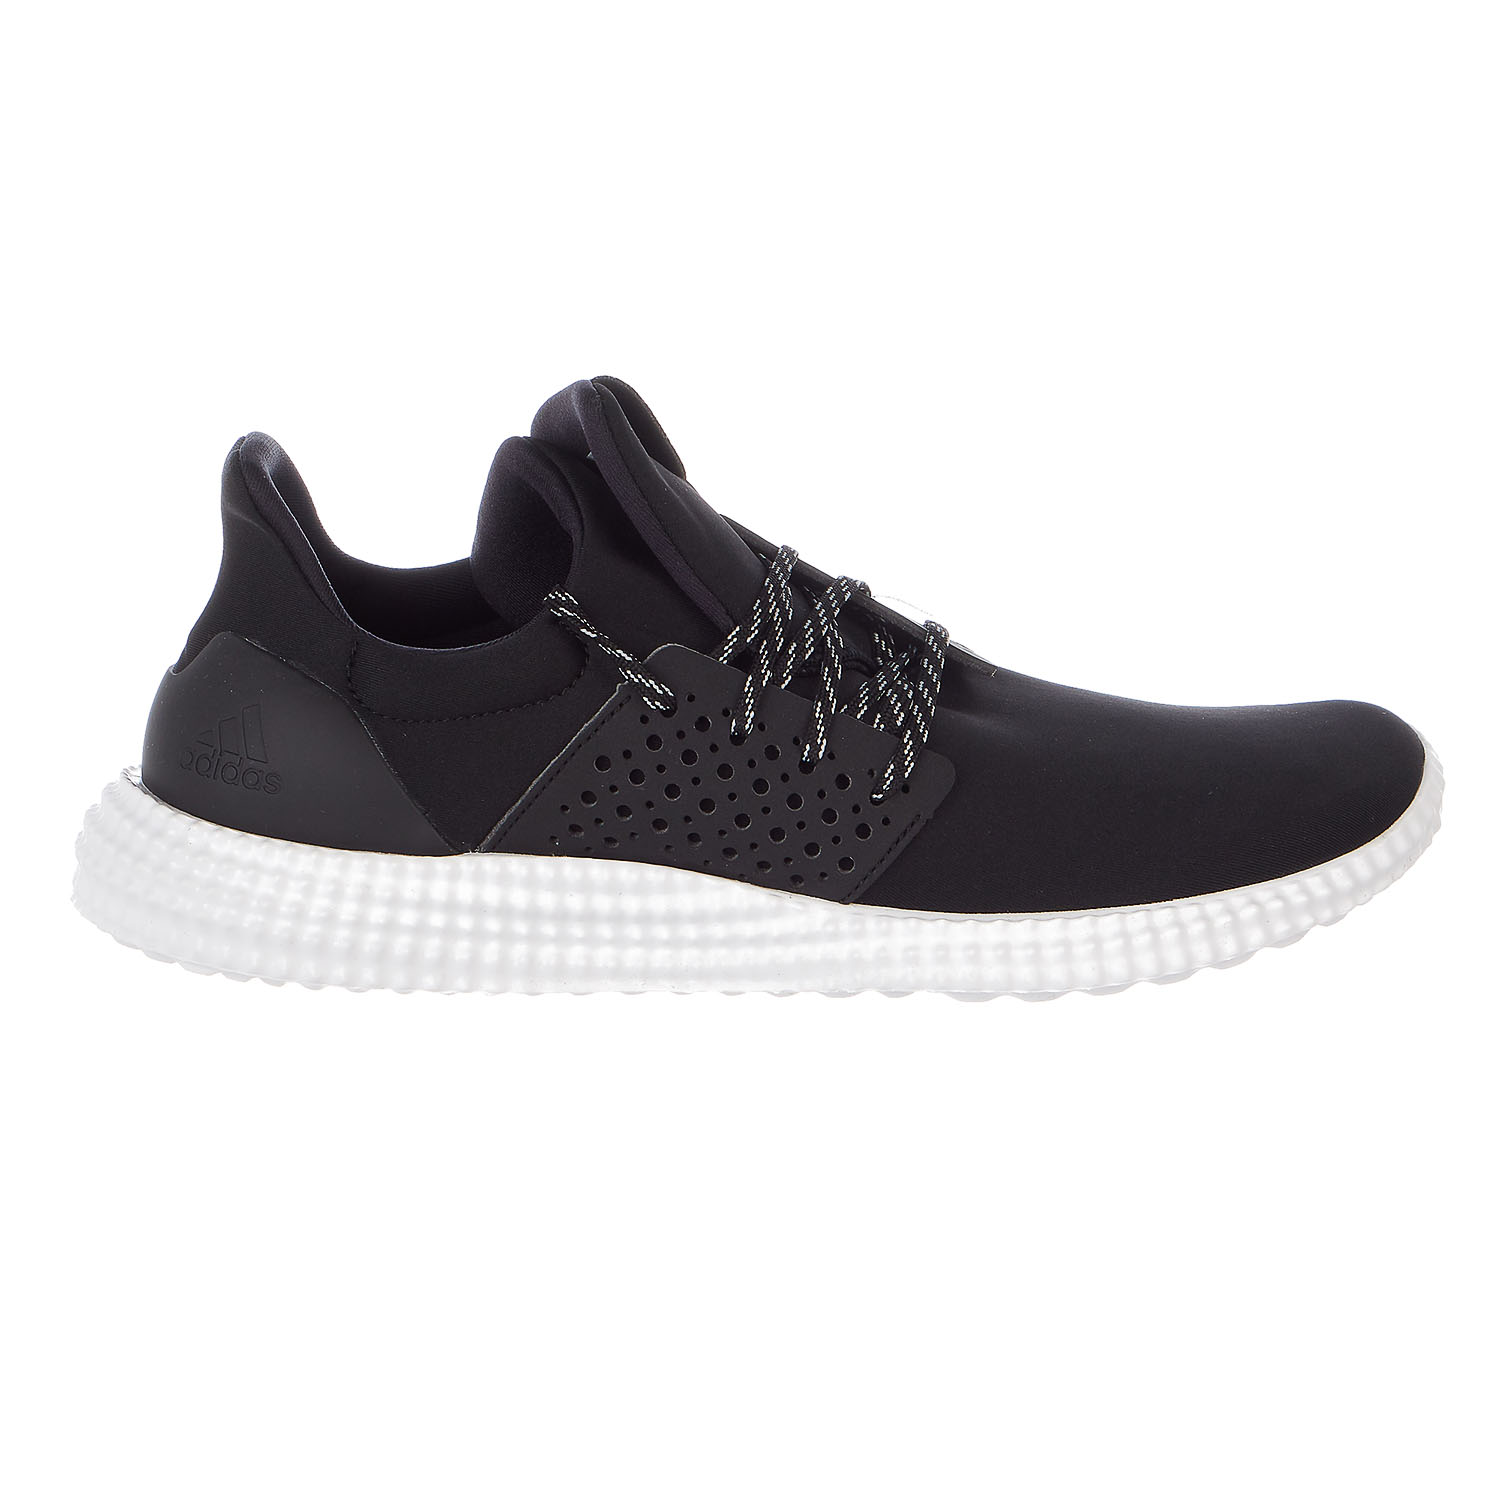 Adidas Adidas Athletics 24 7 Cross-Trainer-Shoes Mens by Adidas